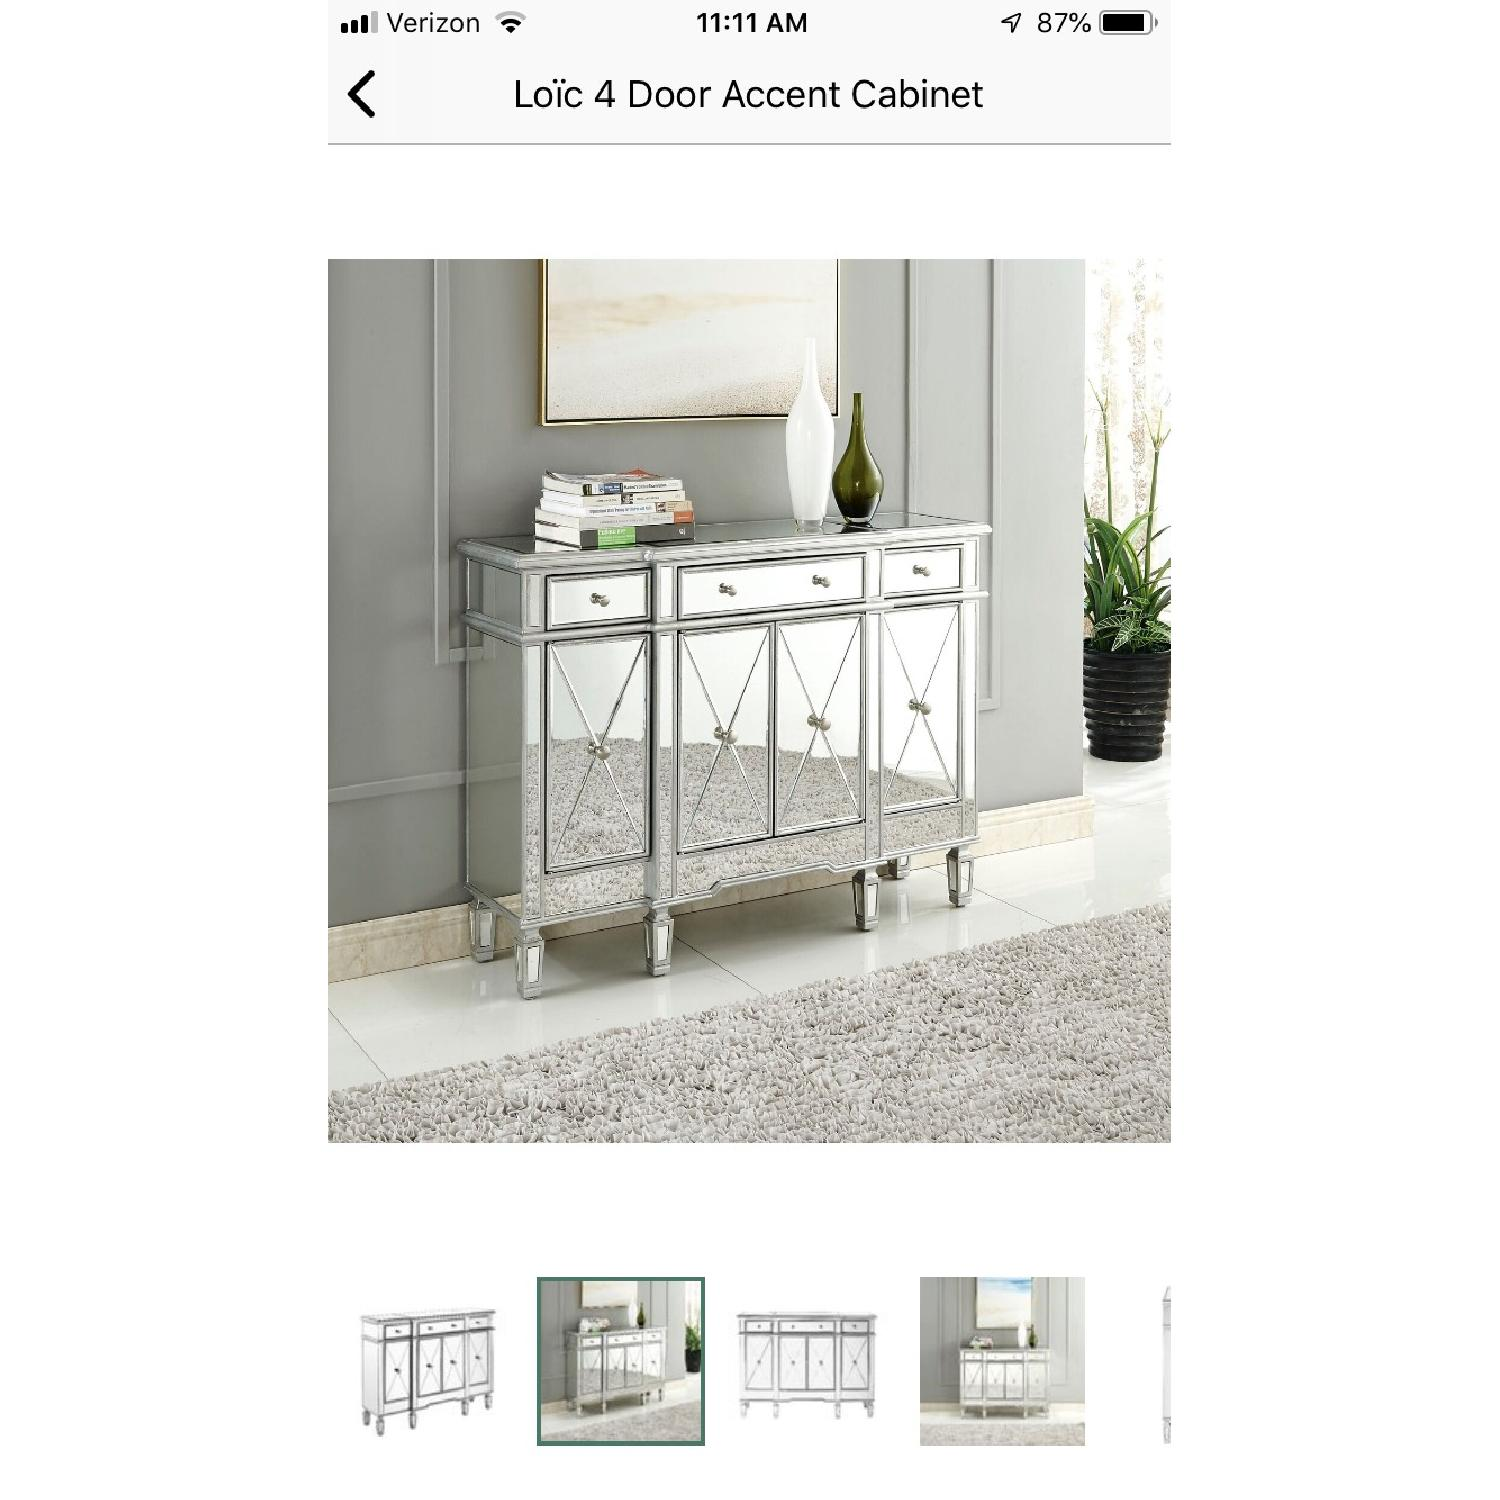 Lamonde Silver Mirrored Cabinet w/ Removable Wine Rack - image-1